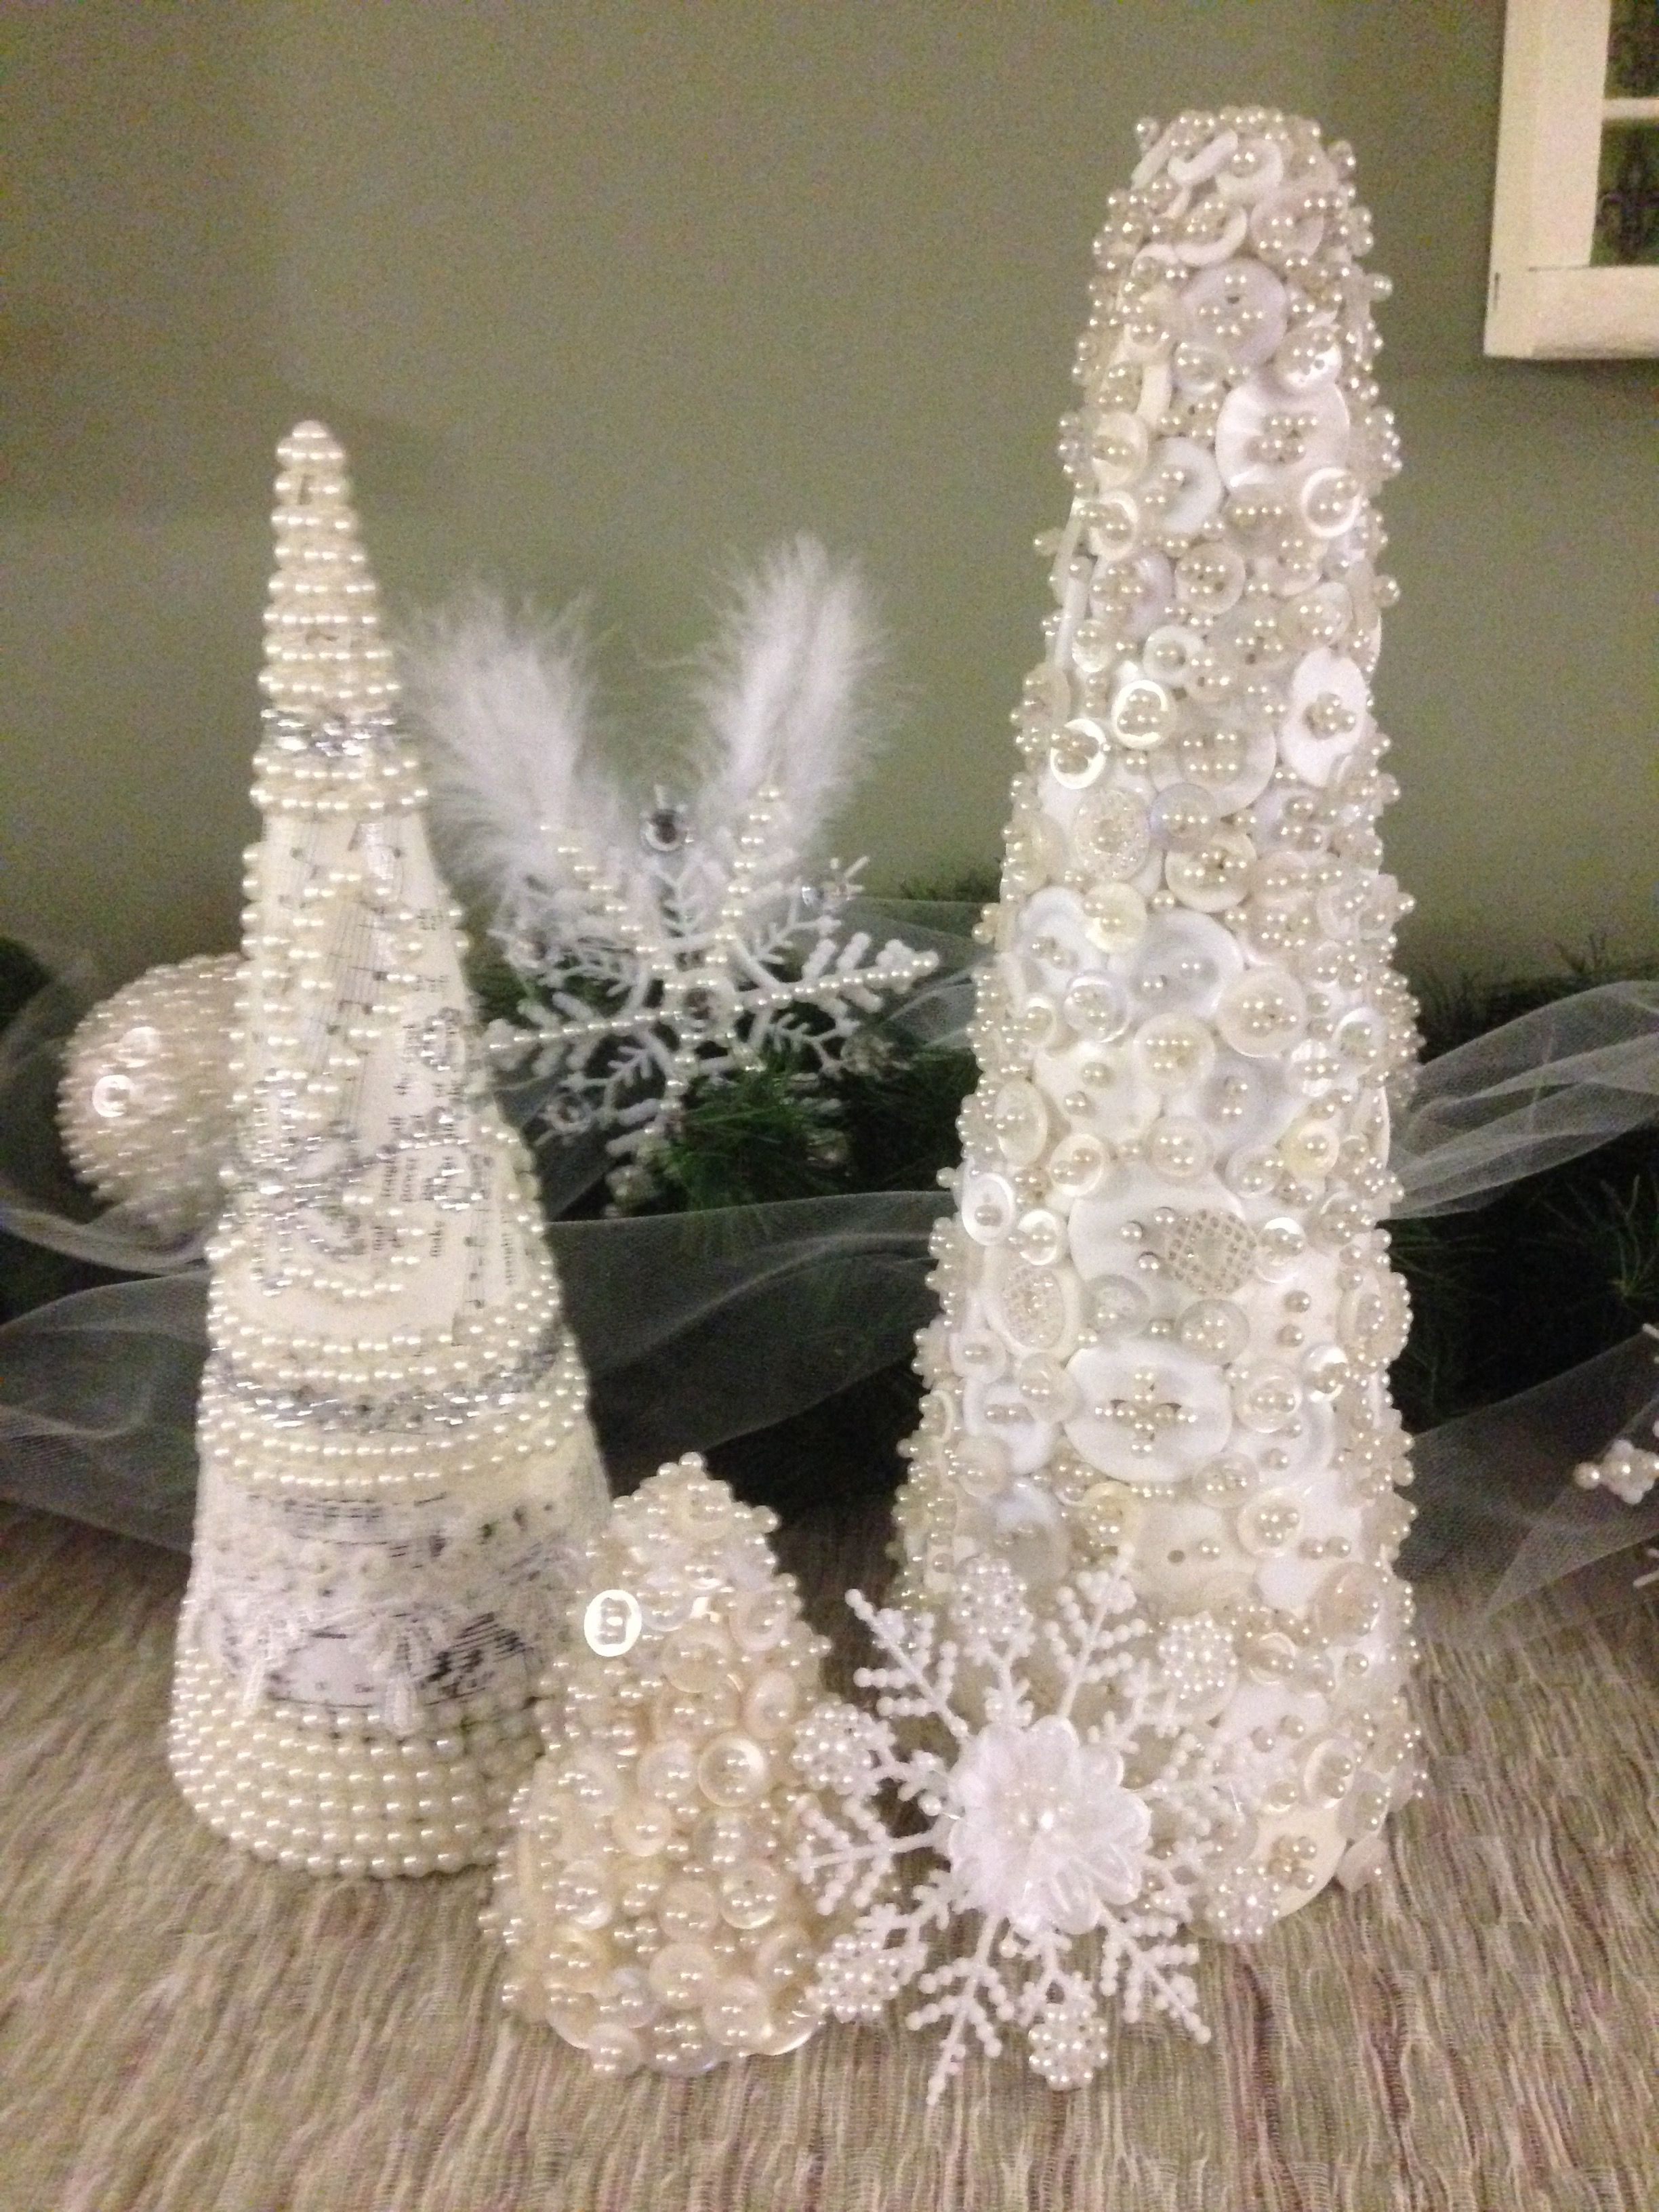 Button trees styrofoam tree forms from michaels covered